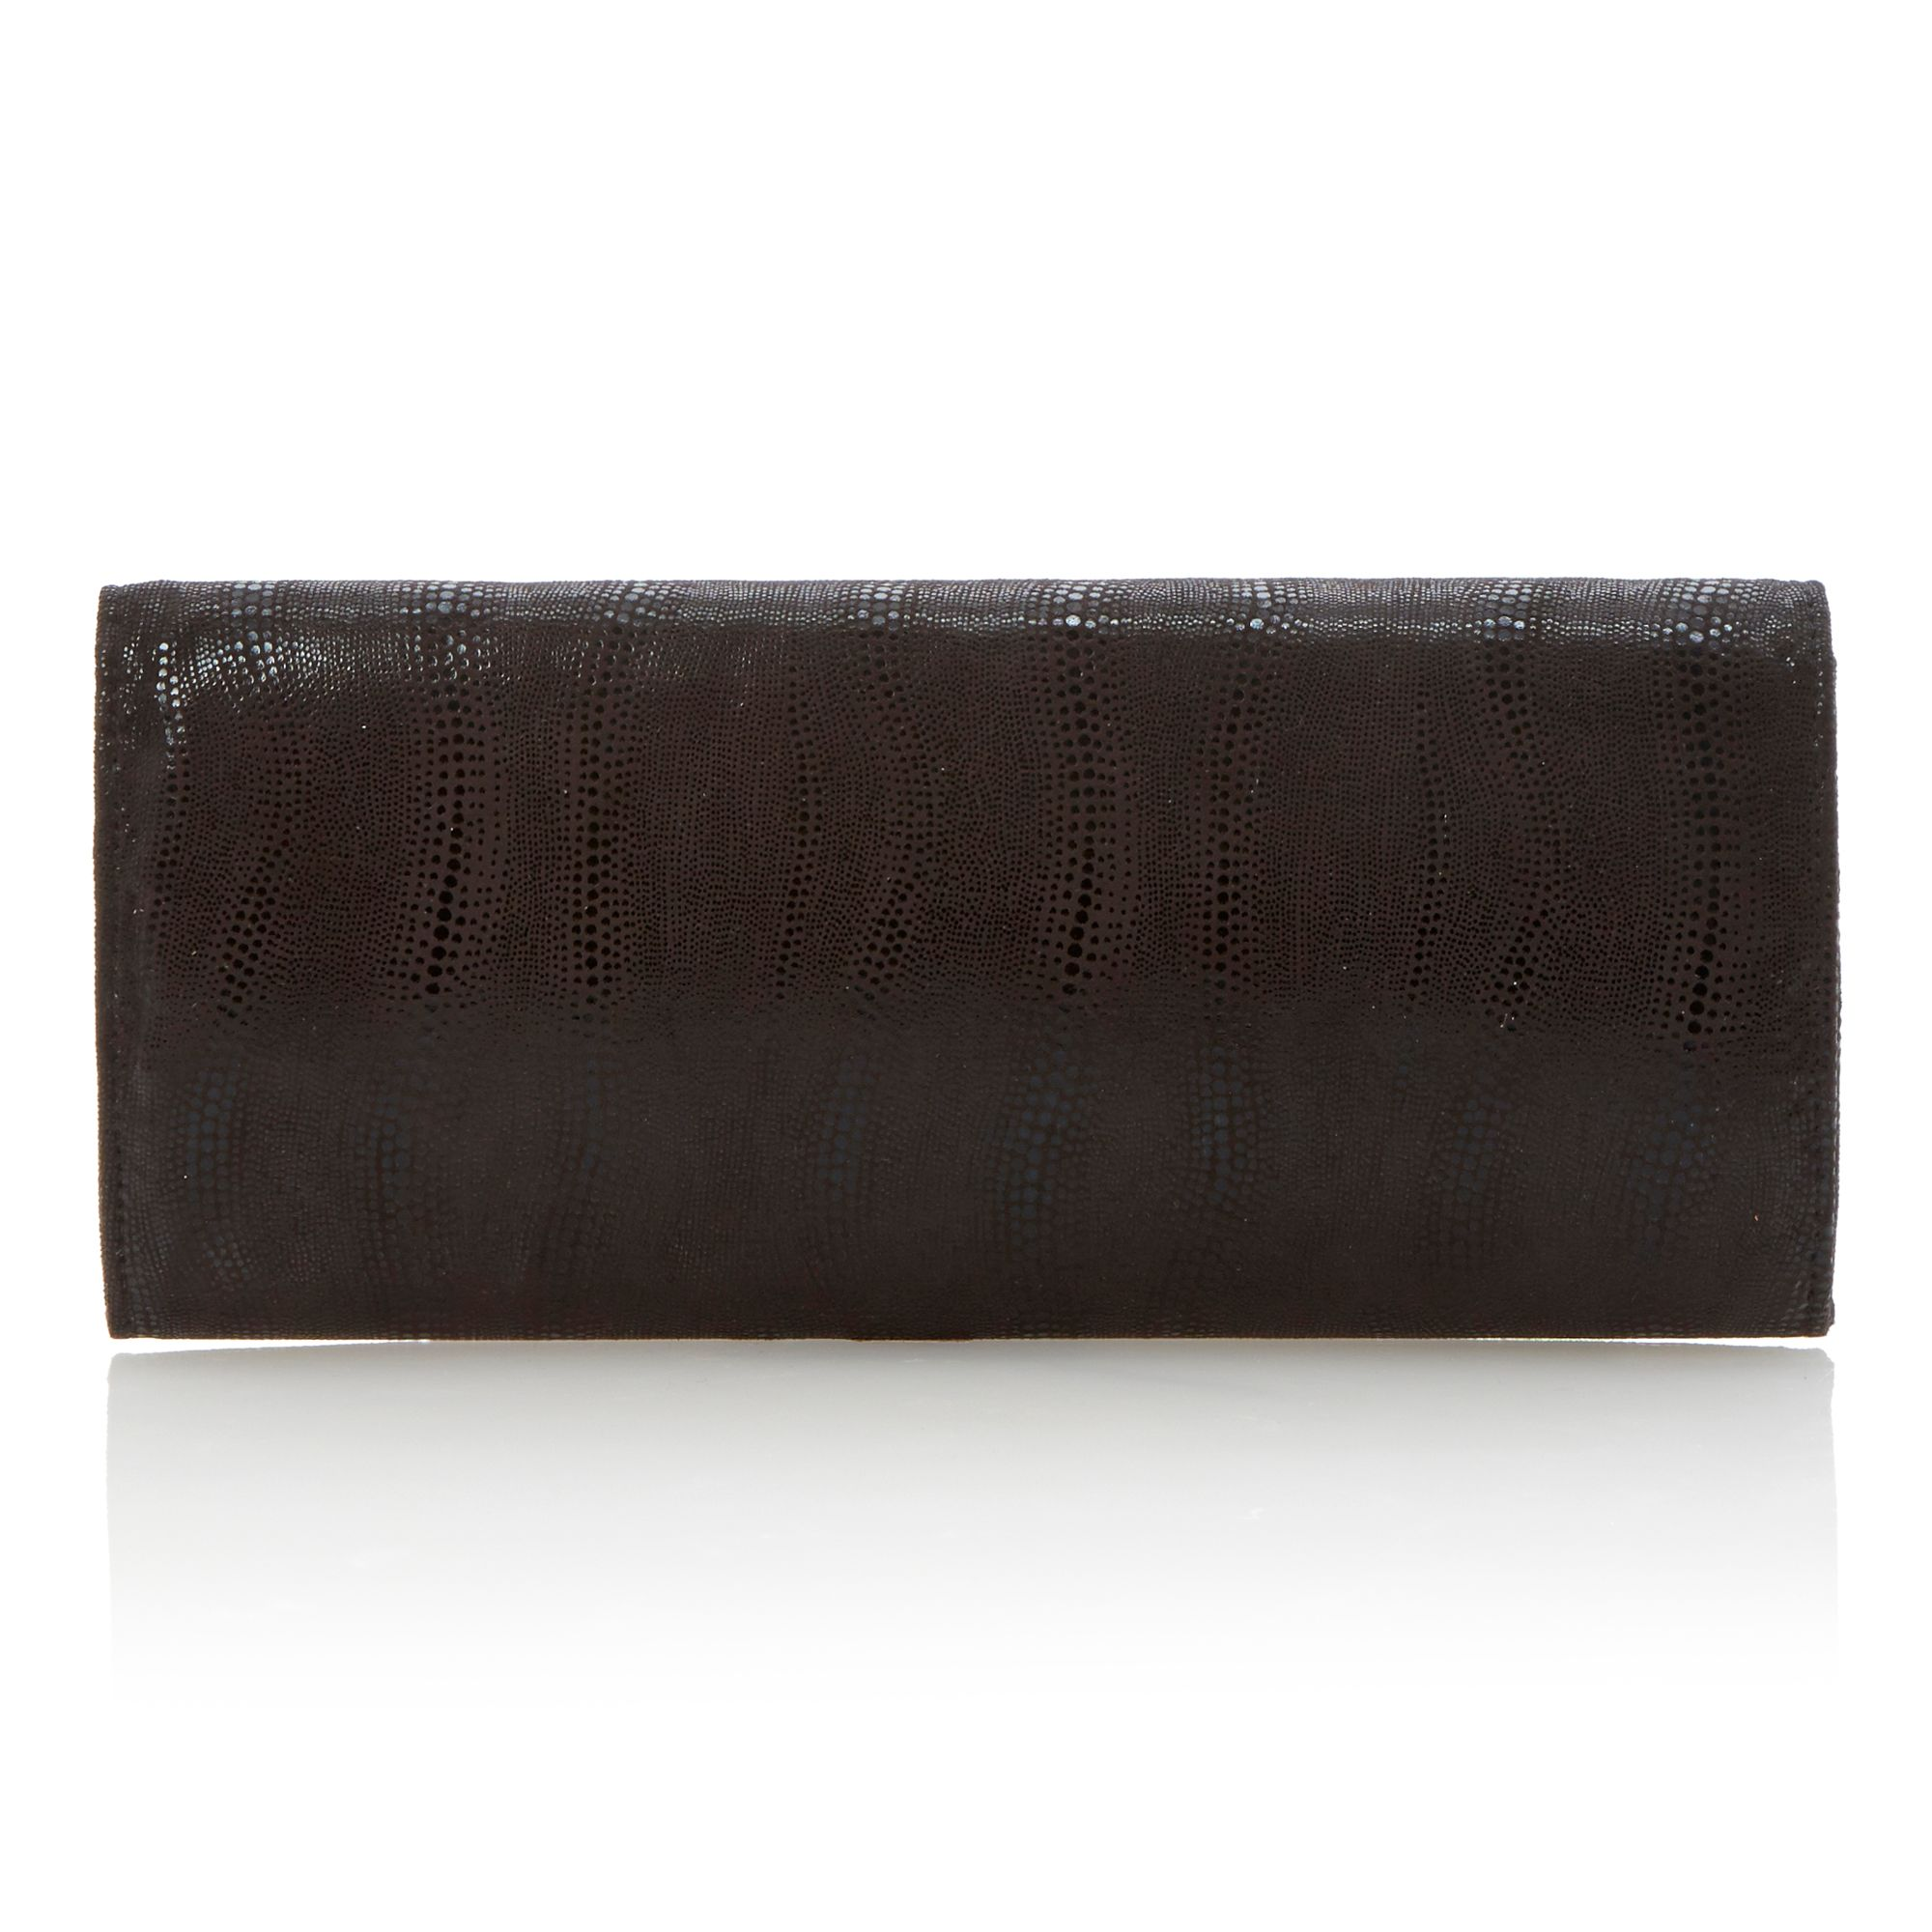 Balfour plain clutch bag